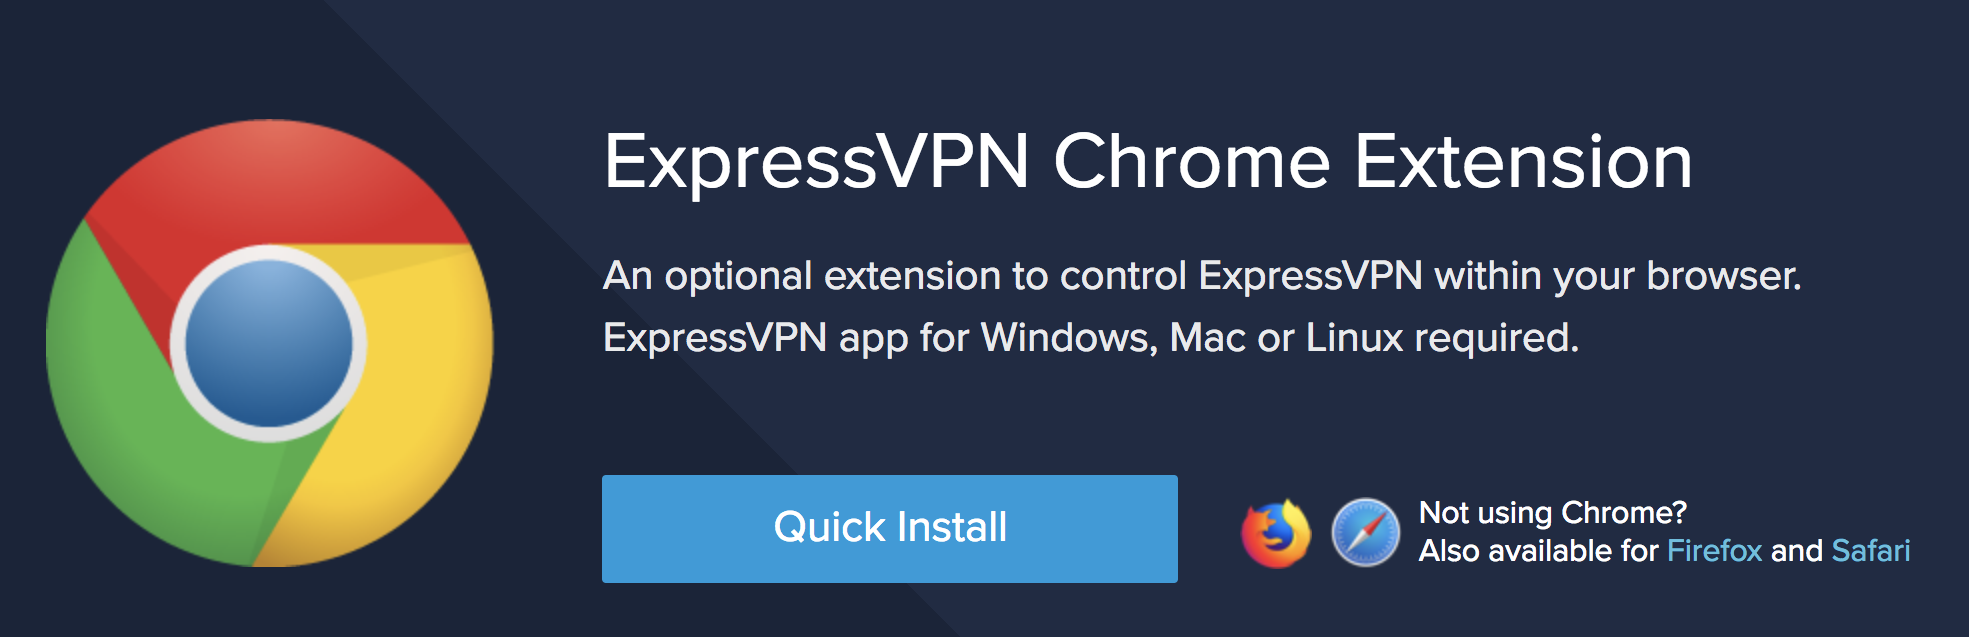 Can I Add a VPN to my Google Chrome Browser? - Ask Dave Taylor